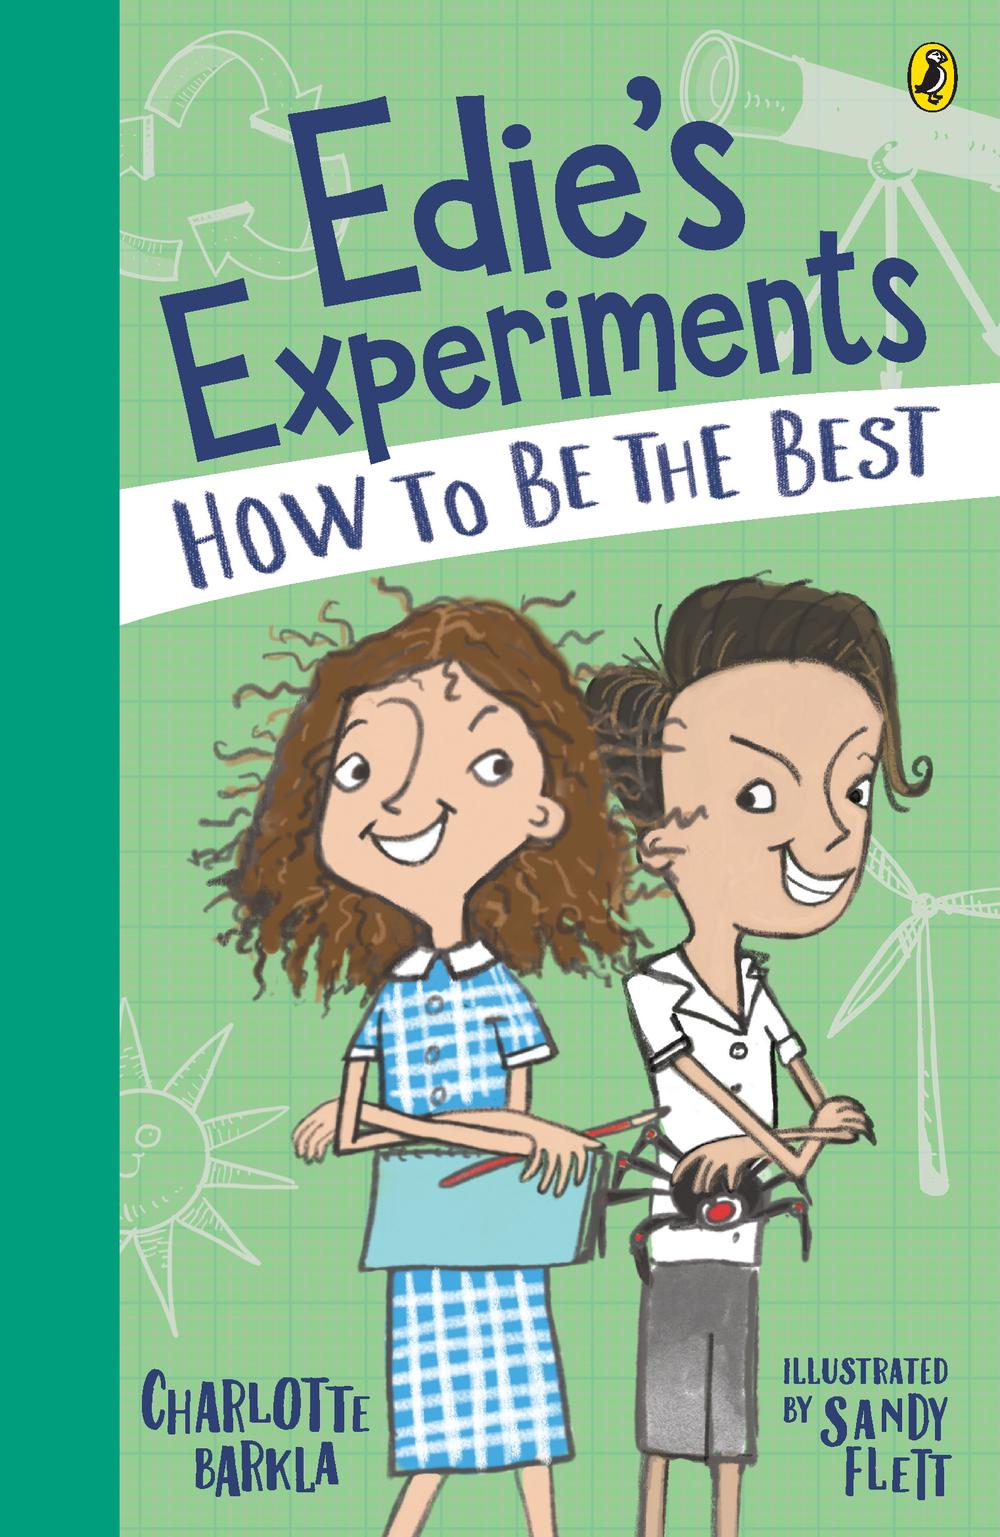 Edie's Experiments 2: How to Be the Best